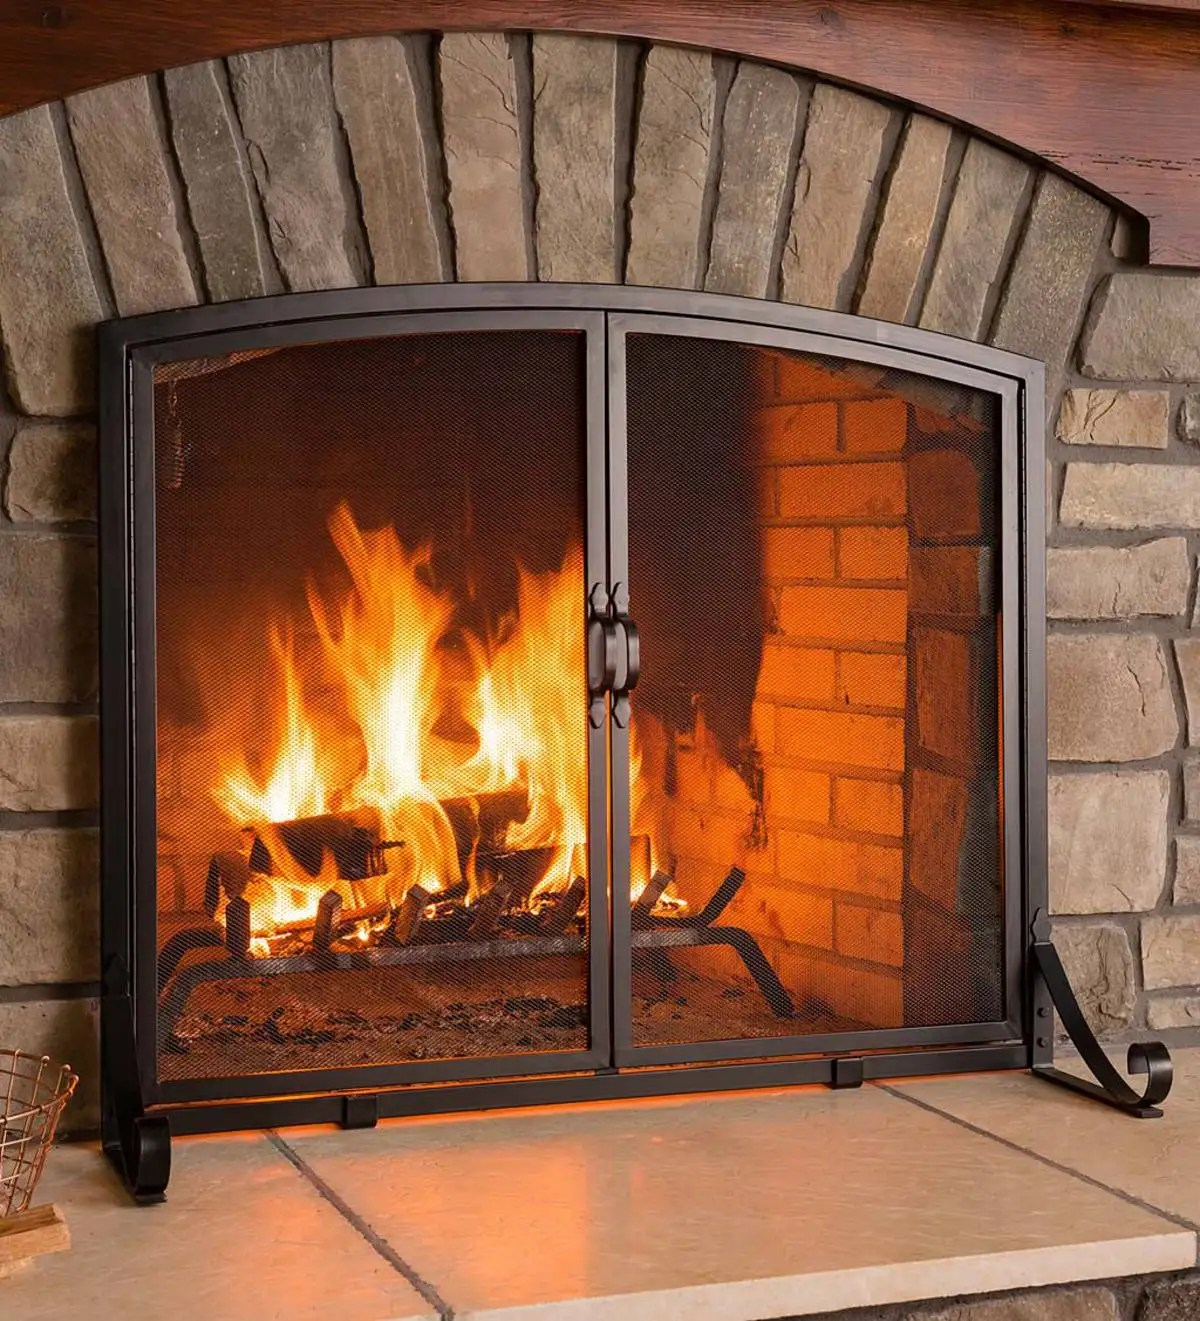 Small Fireplace Screens Under 30 Wide Arched Top Flat Guard Fireplace Screen With Doors Large